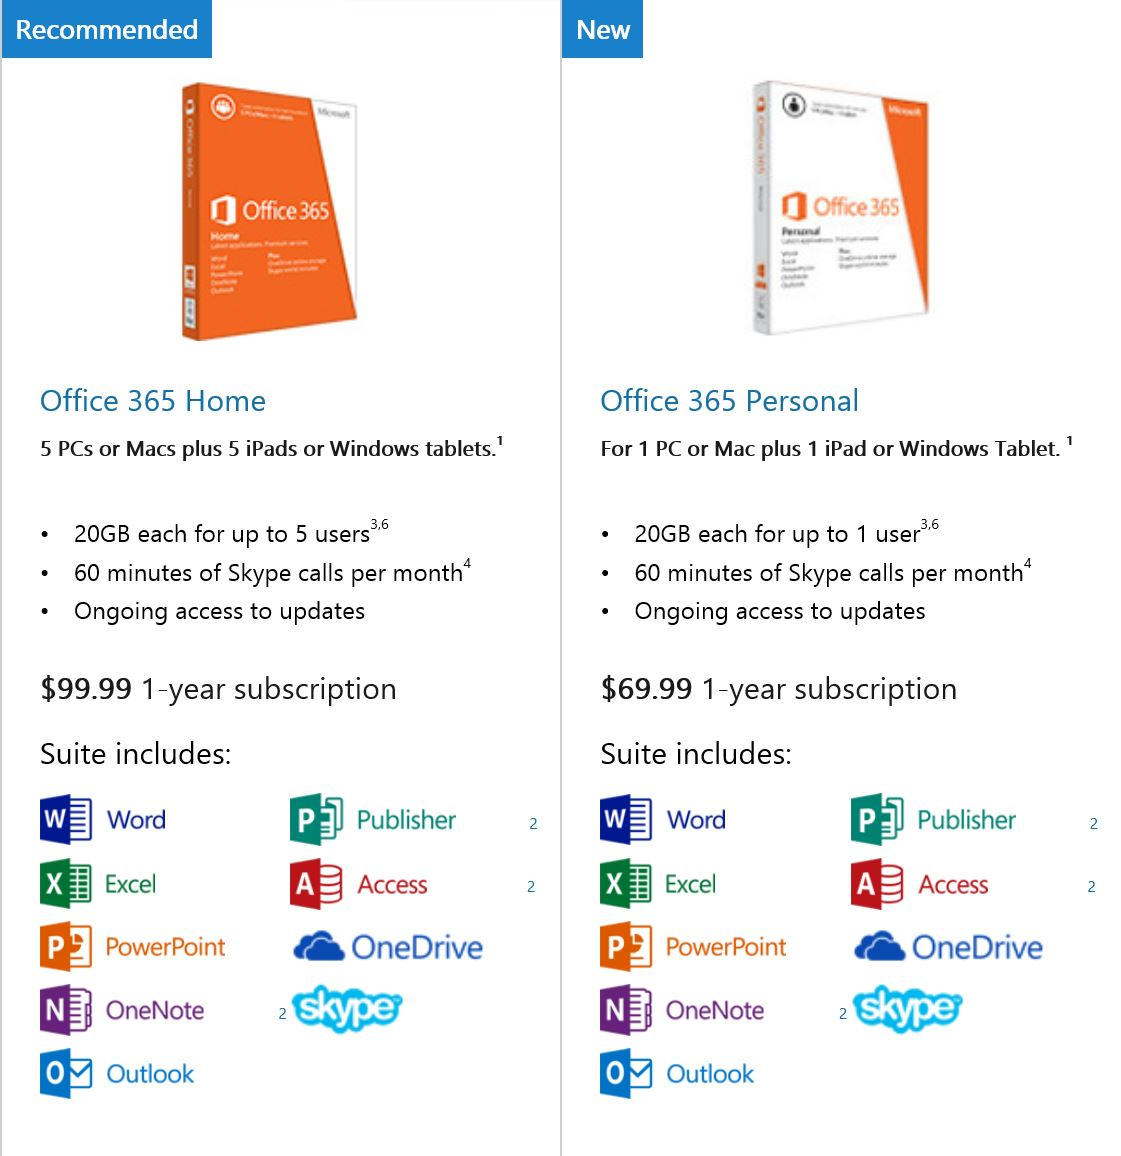 Office 365 Home vs Office 365 Personal